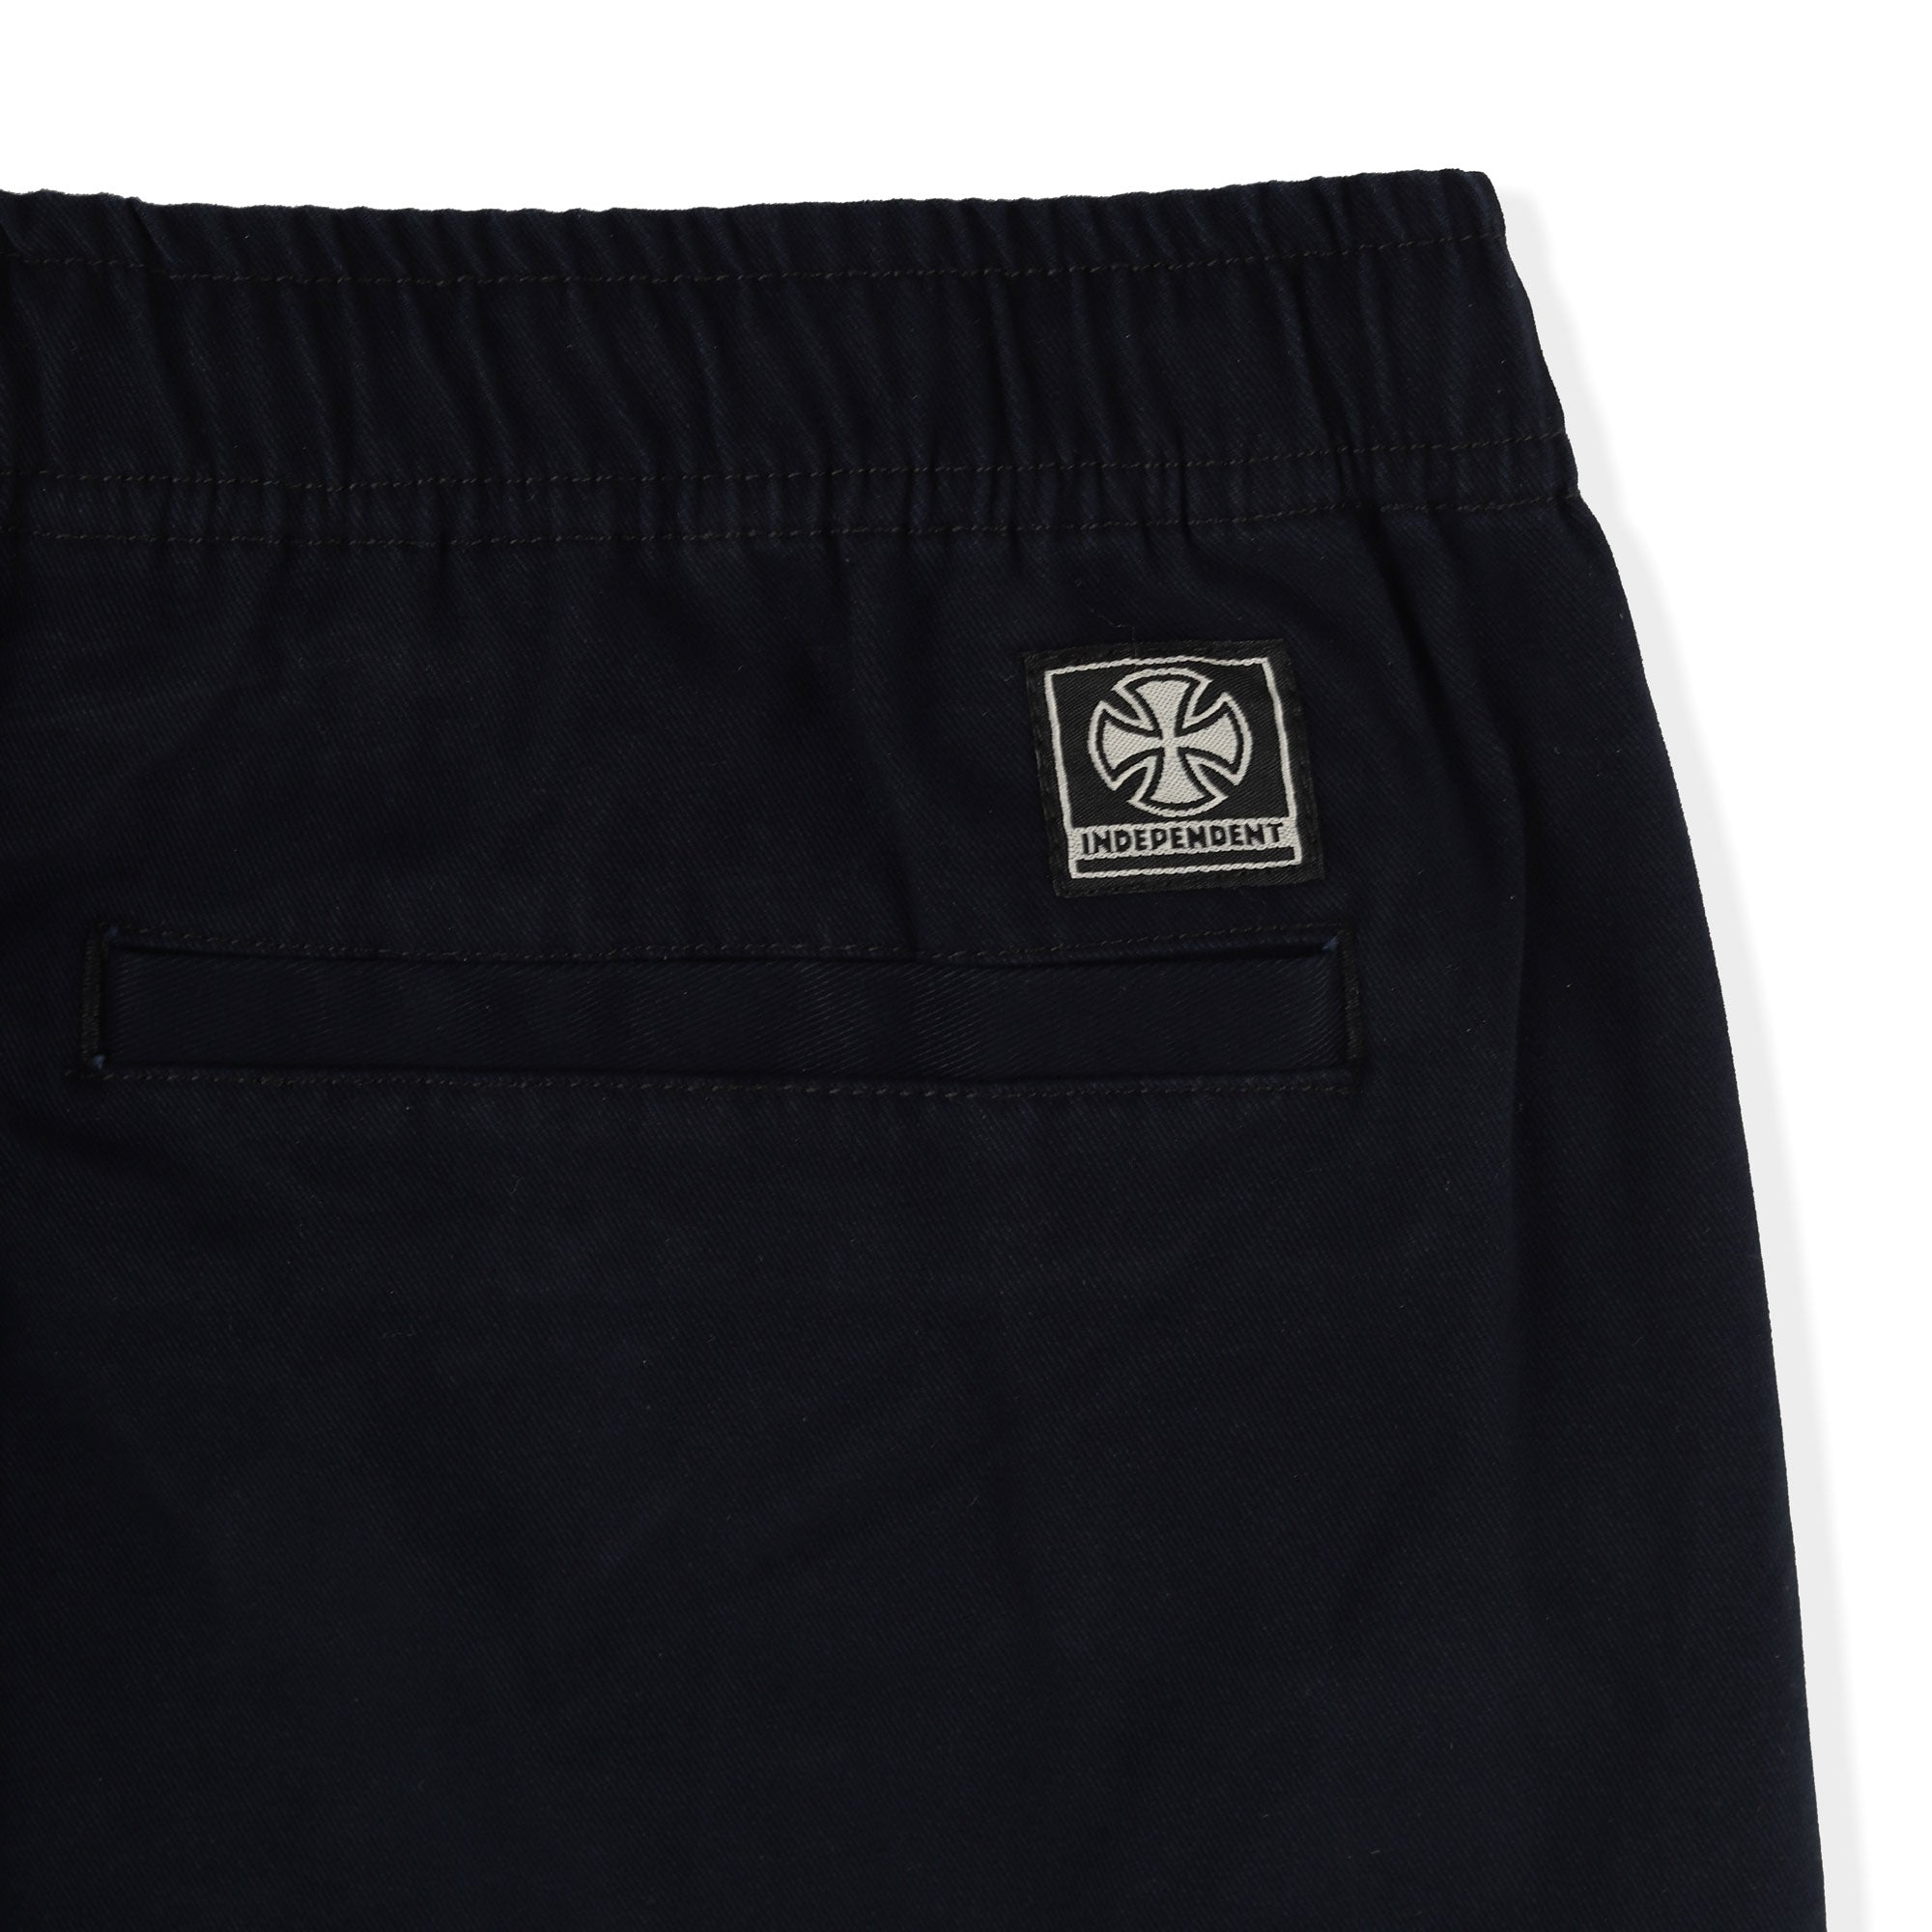 Independent Daily Grind Elastic Shorts Product Photo #3